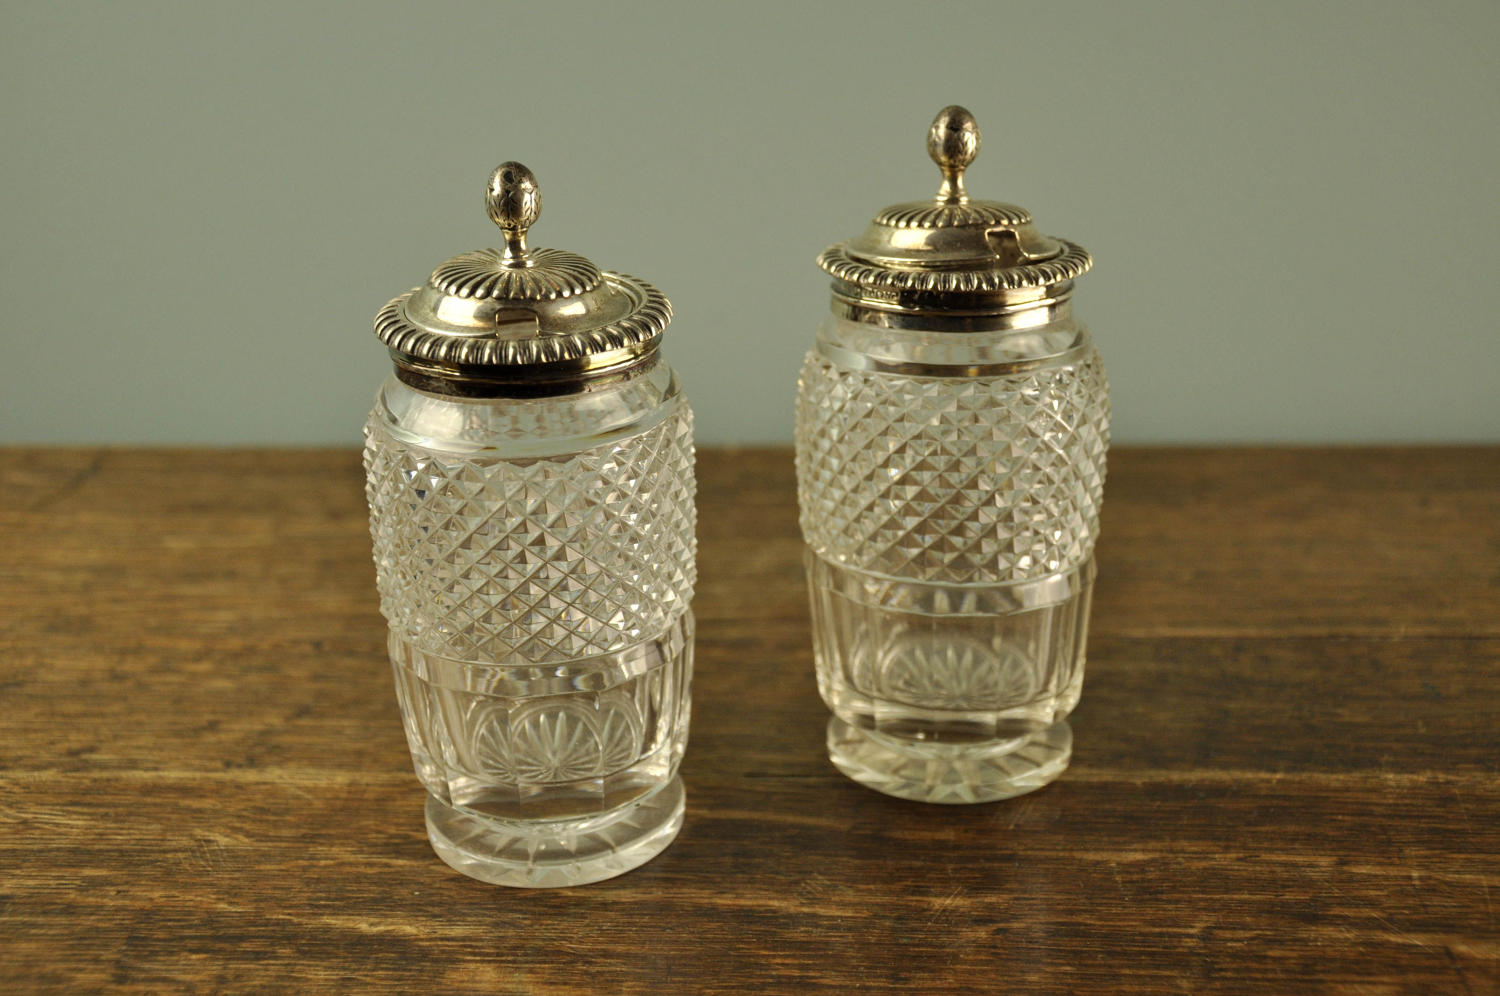 Pair of Regency mustard pots